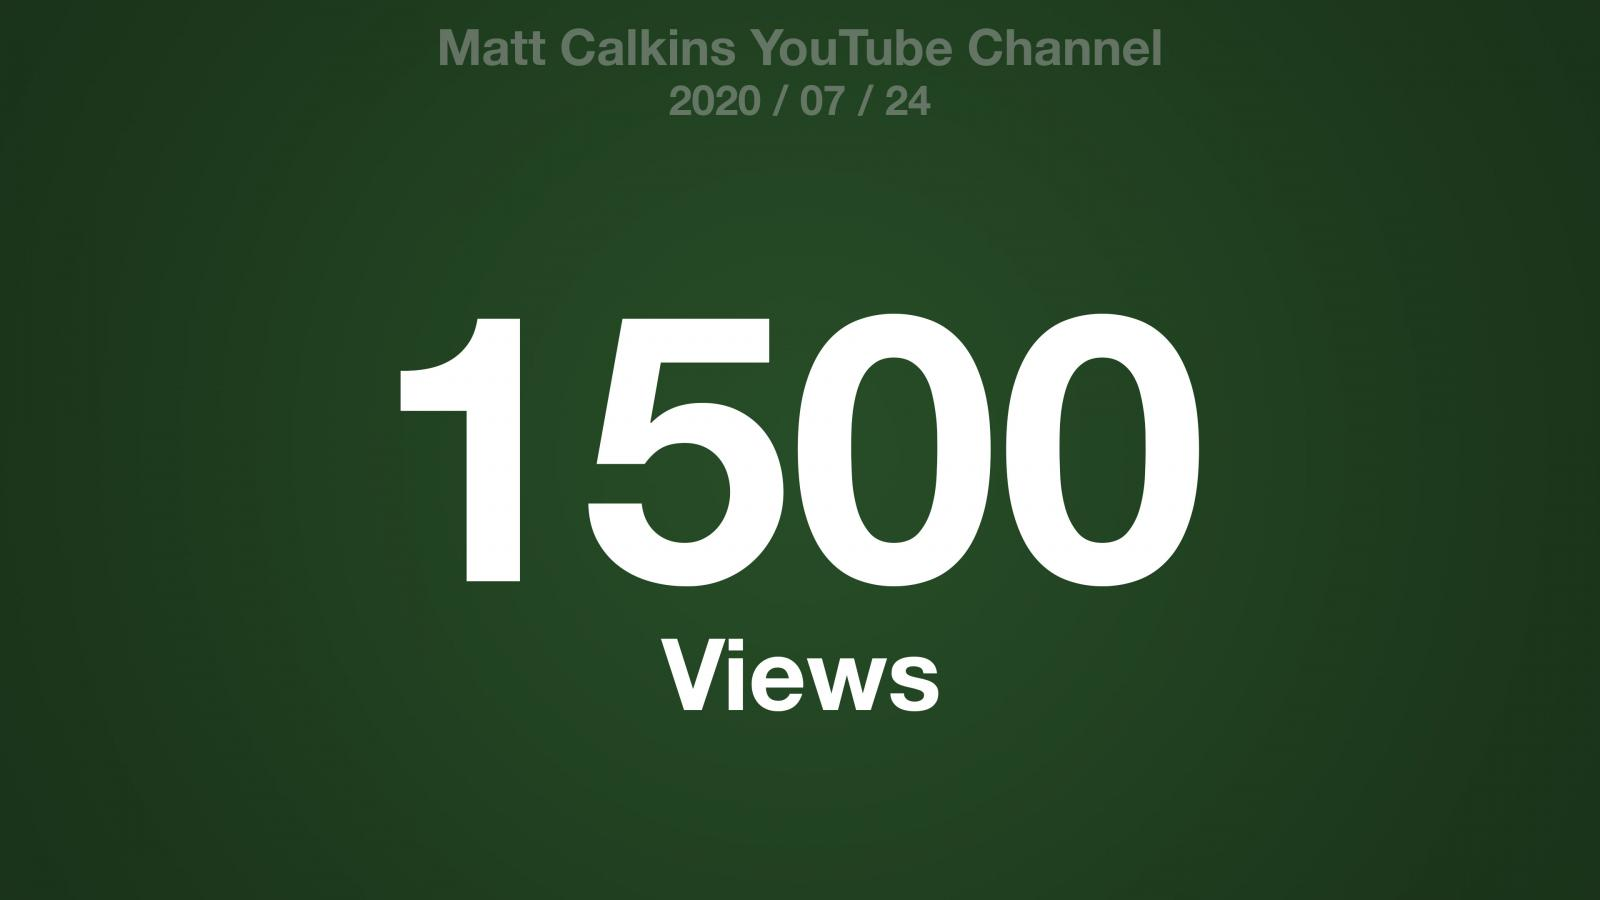 Matt Calkins YouTube Channel 2020/07/24 1500 Views